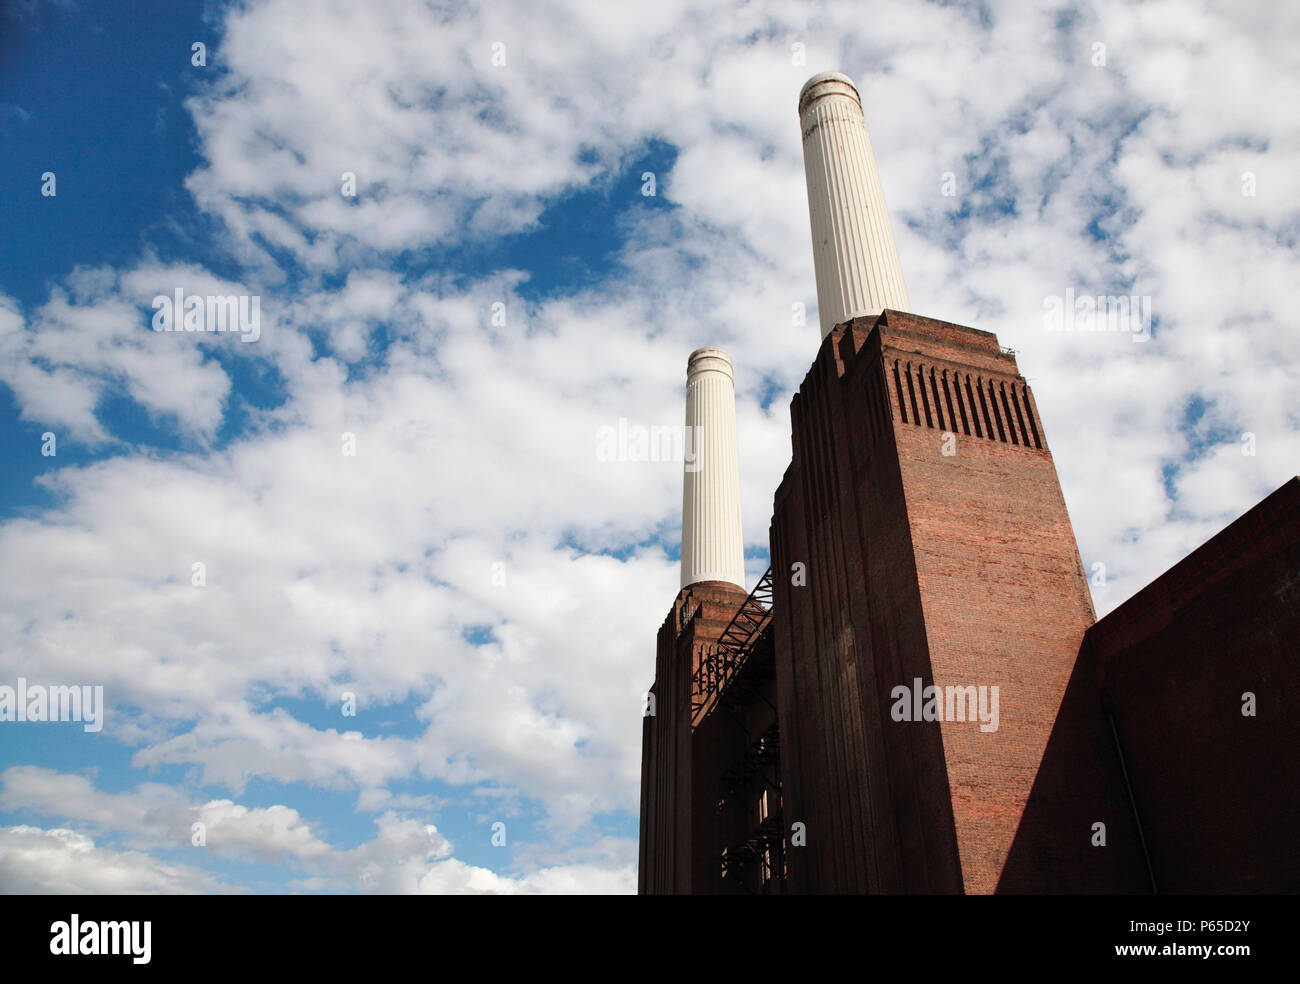 Chimneys of Battersea Power Station, London, UK 2008. Designed by Sir Giles Gilbert Scott and a Grade II listed building. - Stock Image